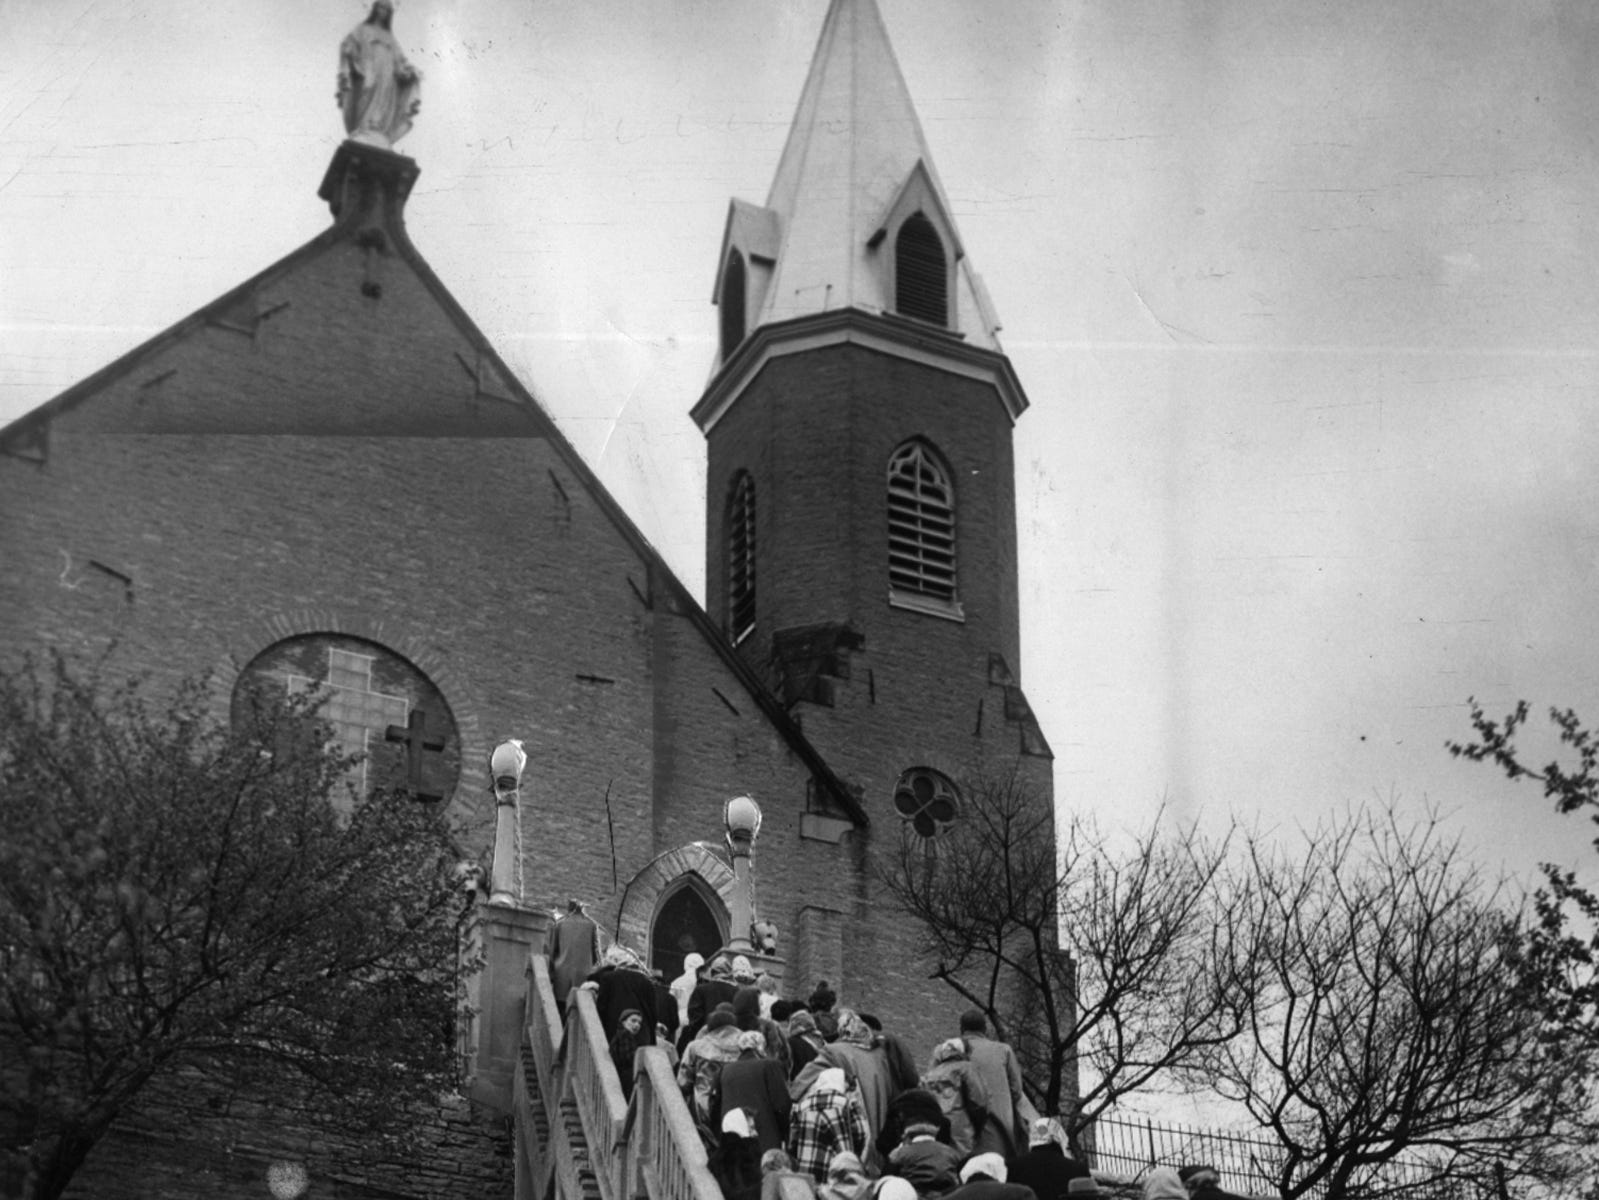 APRIL 1949: People pray the steps on Good Friday at Immaculata Church in Mount Adams.